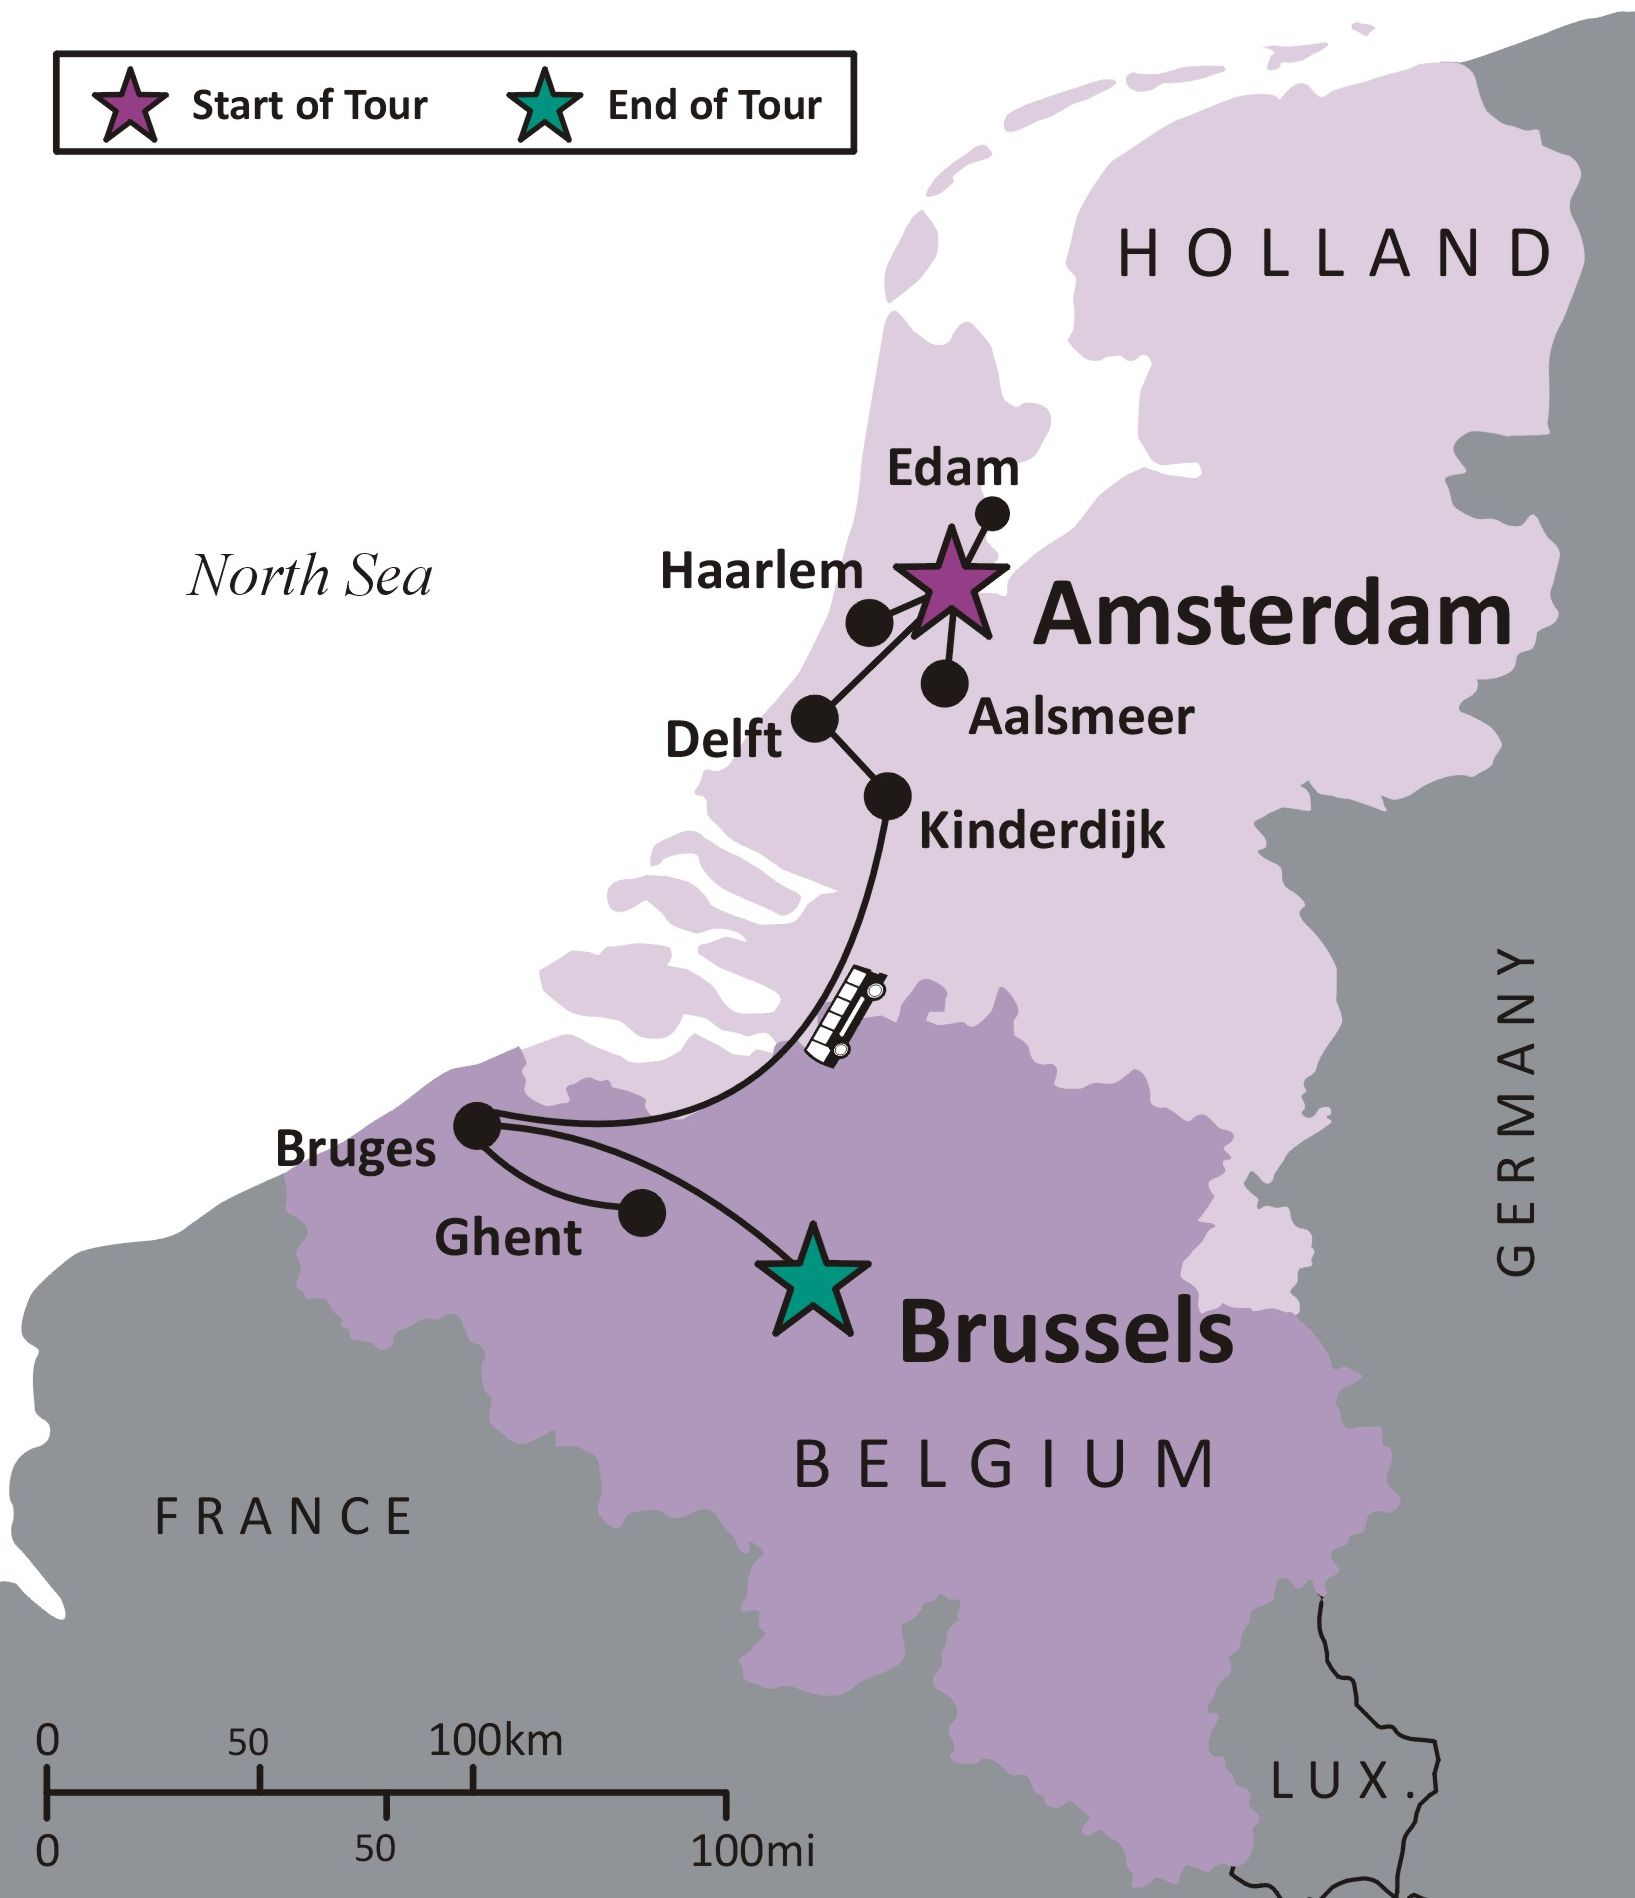 Map Of France And Holland Belgium.Sights And Soul Travels Masters And Artisans Tour To